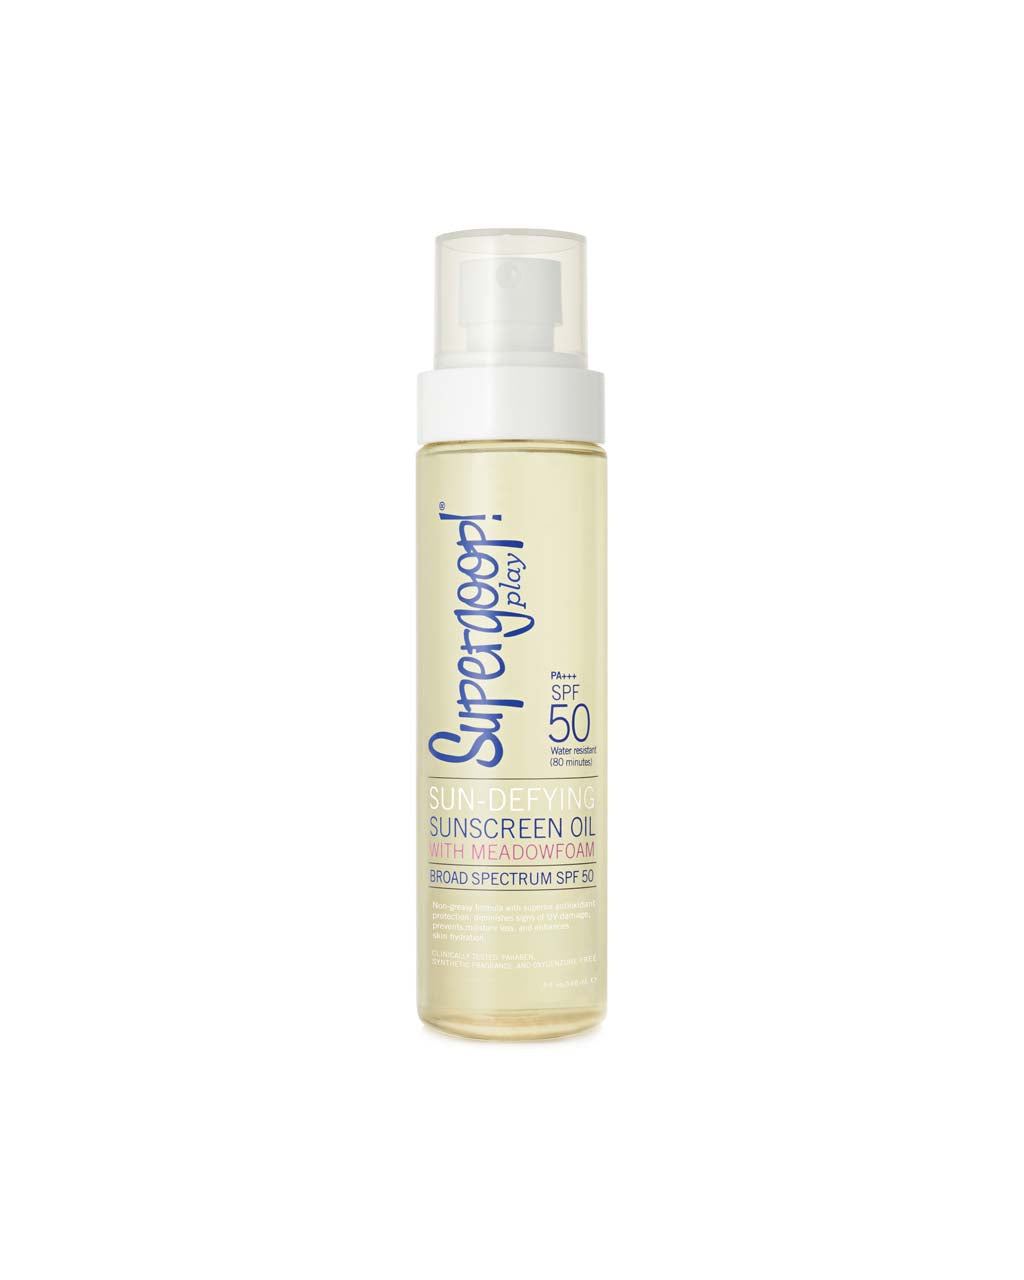 This sunscreen oil from Supergoop comes in a clear bottle with white spray cap.